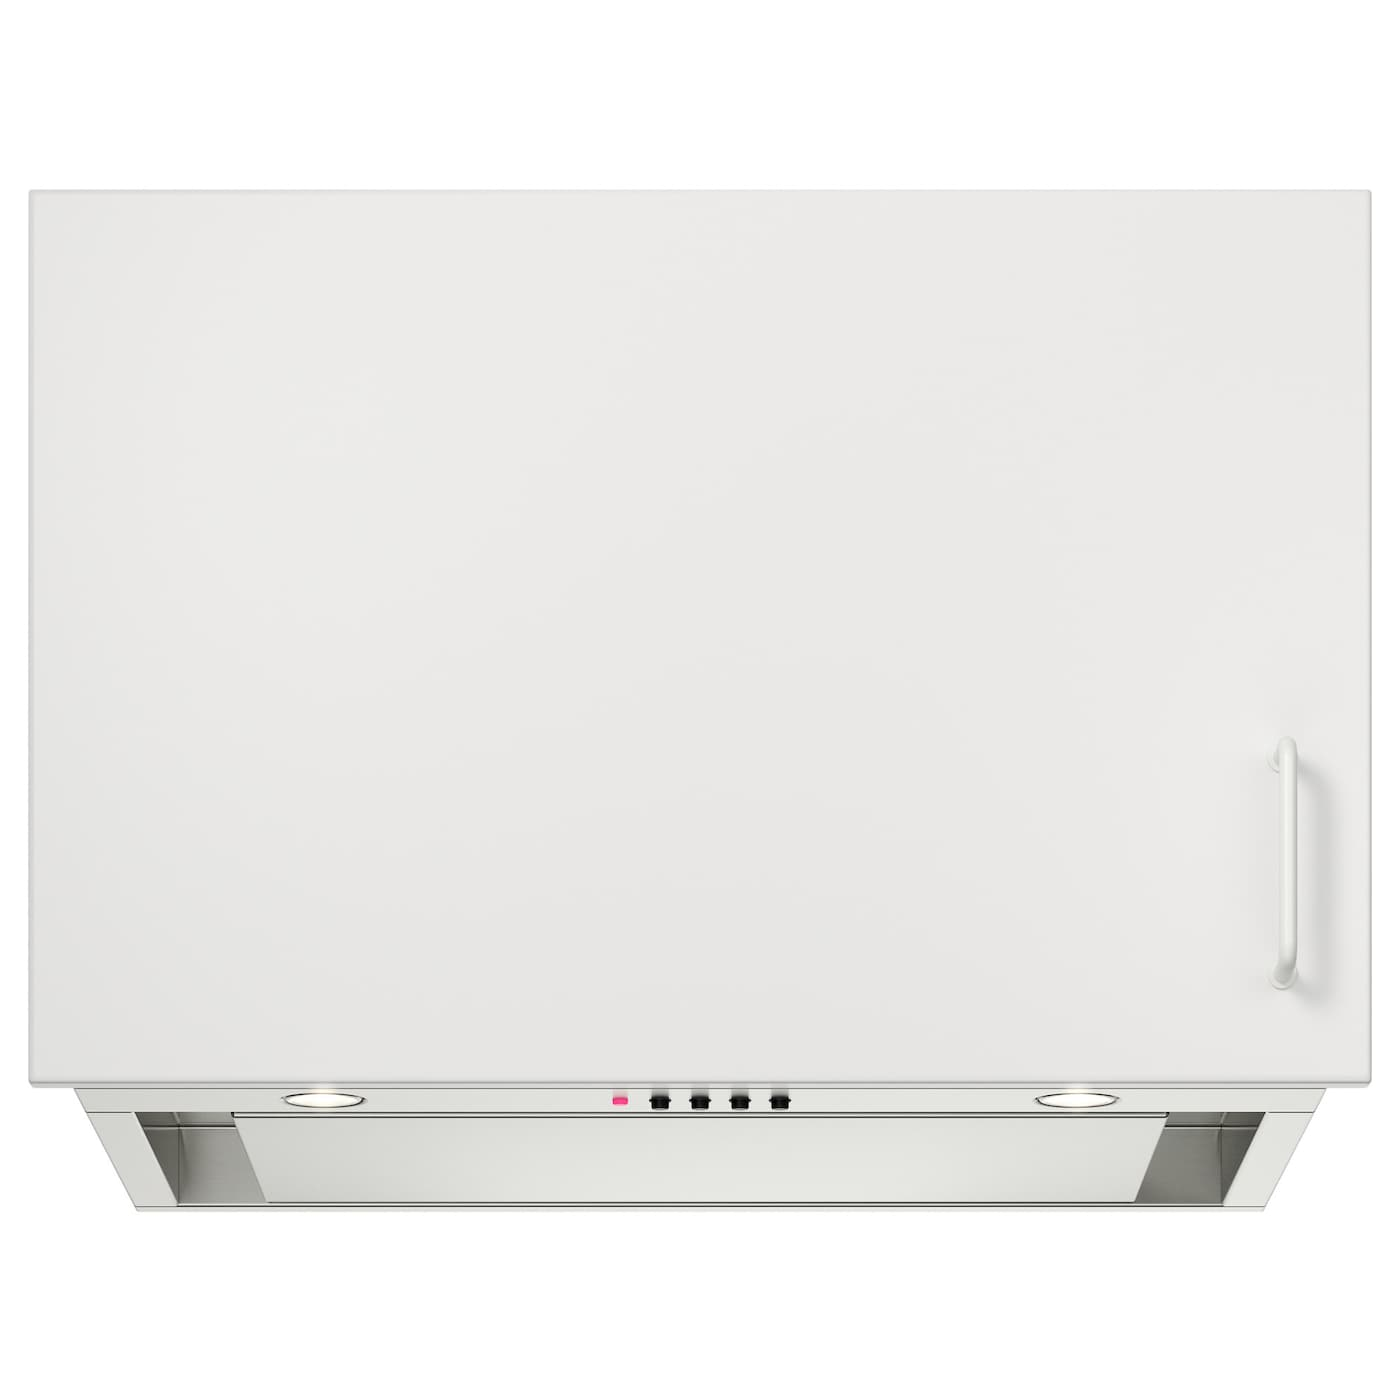 IKEA UNDERVERK Built In Extractor Hood Easy To Install In A Wall Cabinet.